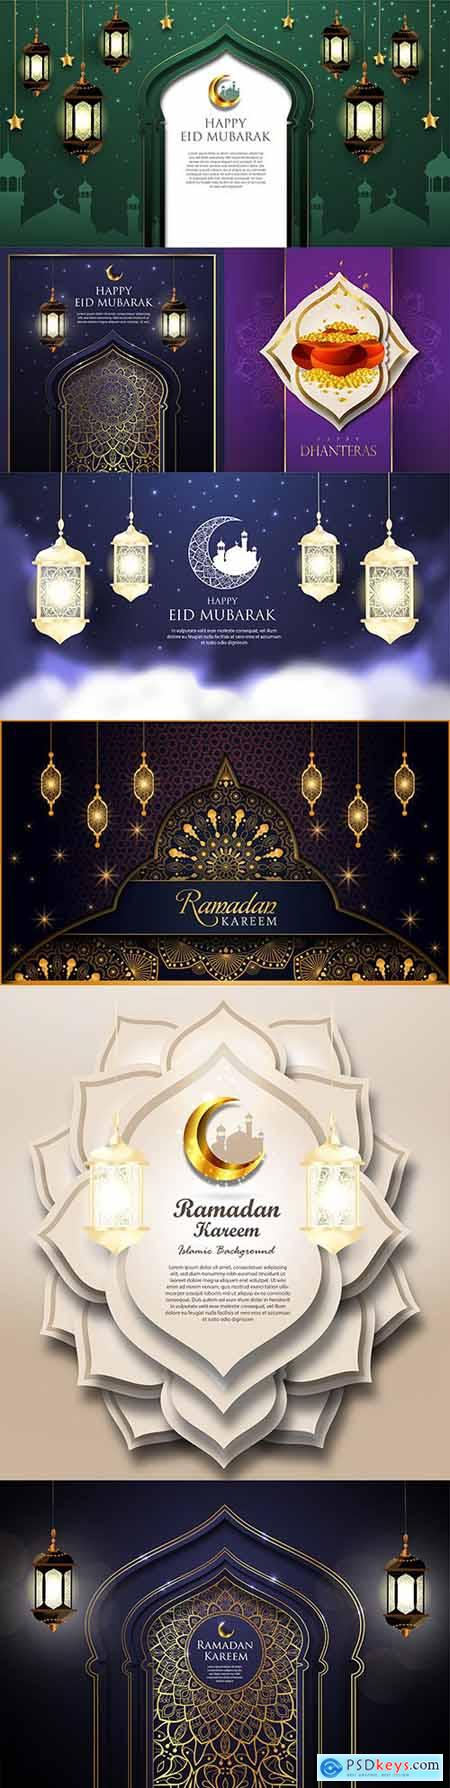 Ramadan Kareem and Eid Mubarak background Islamic 3